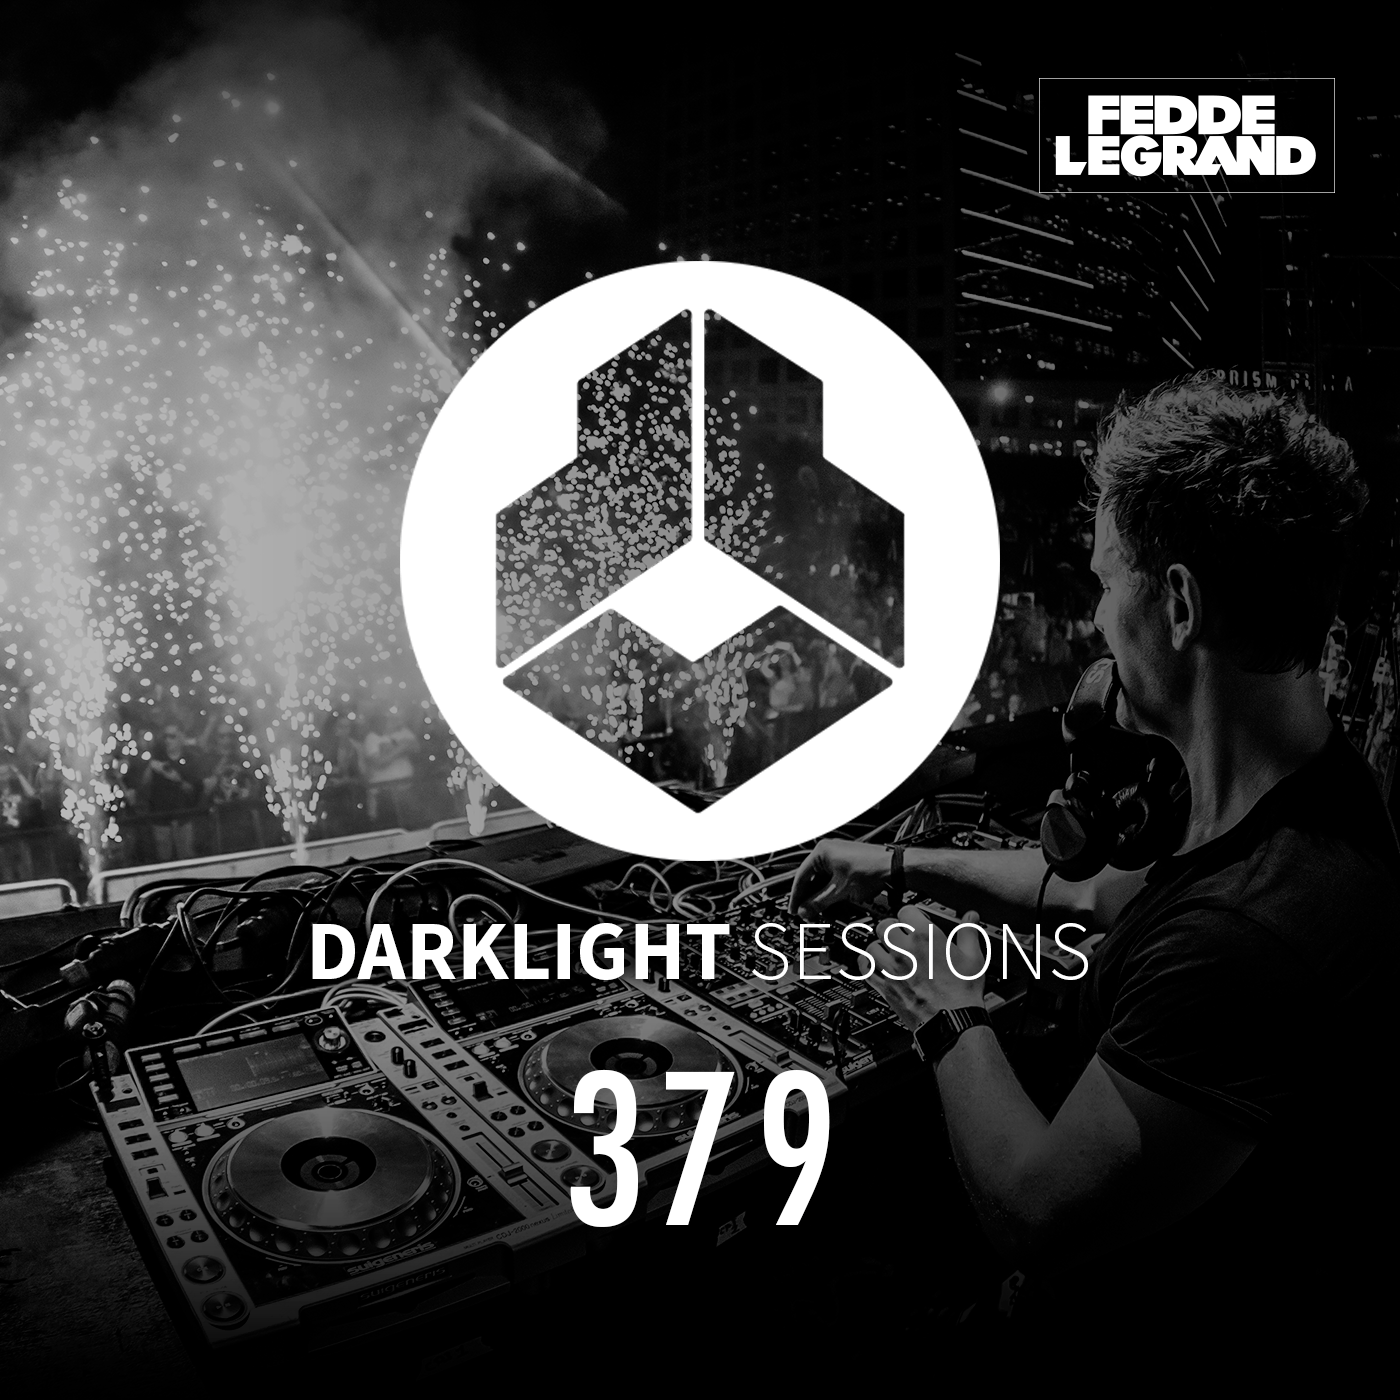 Darklight Sessions 379